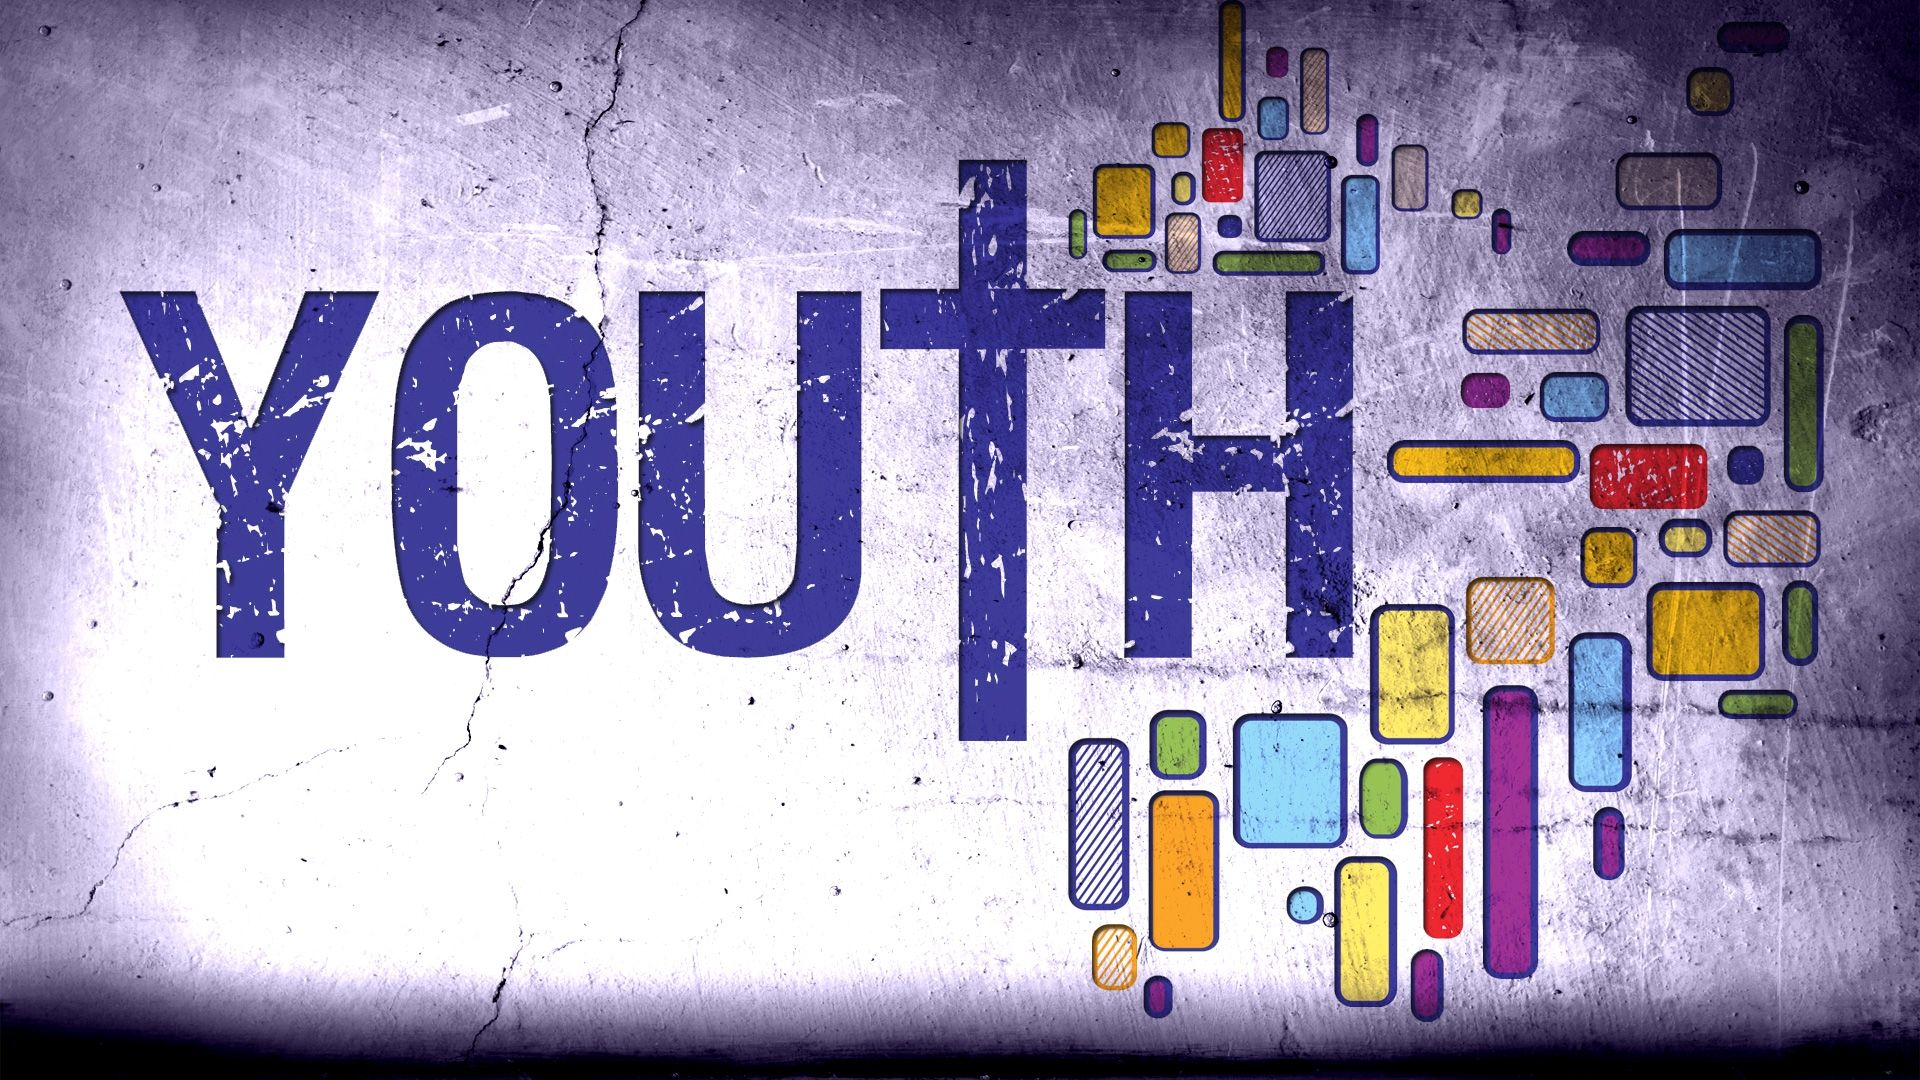 Cool Youth Wallpaper Download Cool Youth Wallpaper Hd Download Cool Youth Wallpaper From Th Free Christian Wallpaper Christian Symbols Android Wallpaper